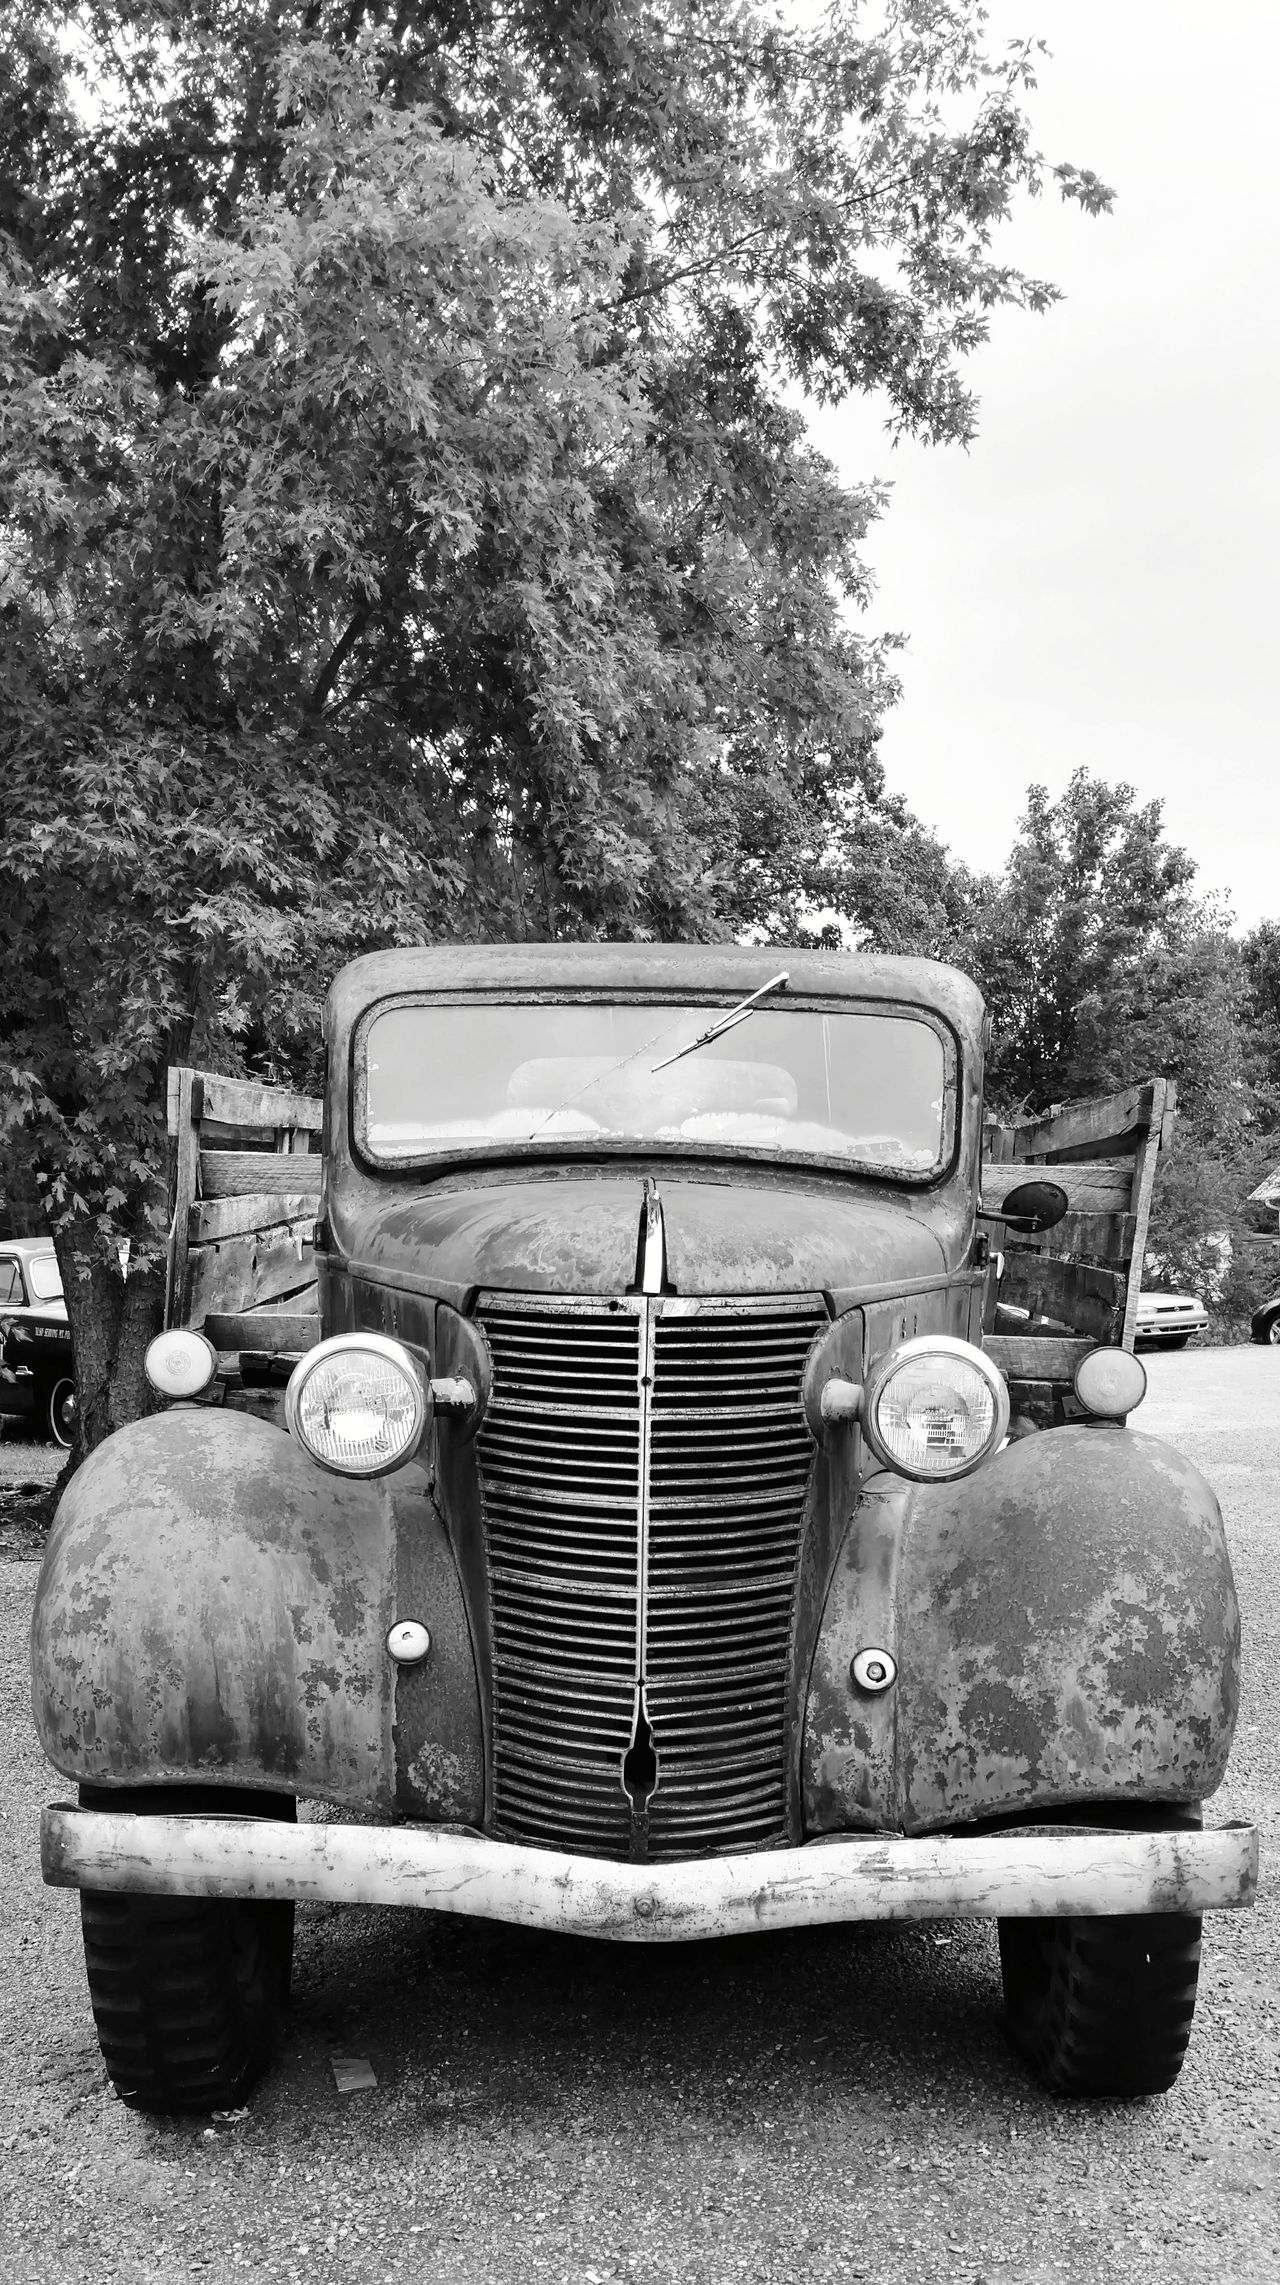 """""""The Darlins"""" old rusty truck! Retro Styled Transportation Close-up Land Vehicle Old-fashioned Mayberry Andy Griffith Show The Darlins Old And Rusty Classic Truck Museum Piece EyeEm Eye Gallery Cell Phone Photography"""